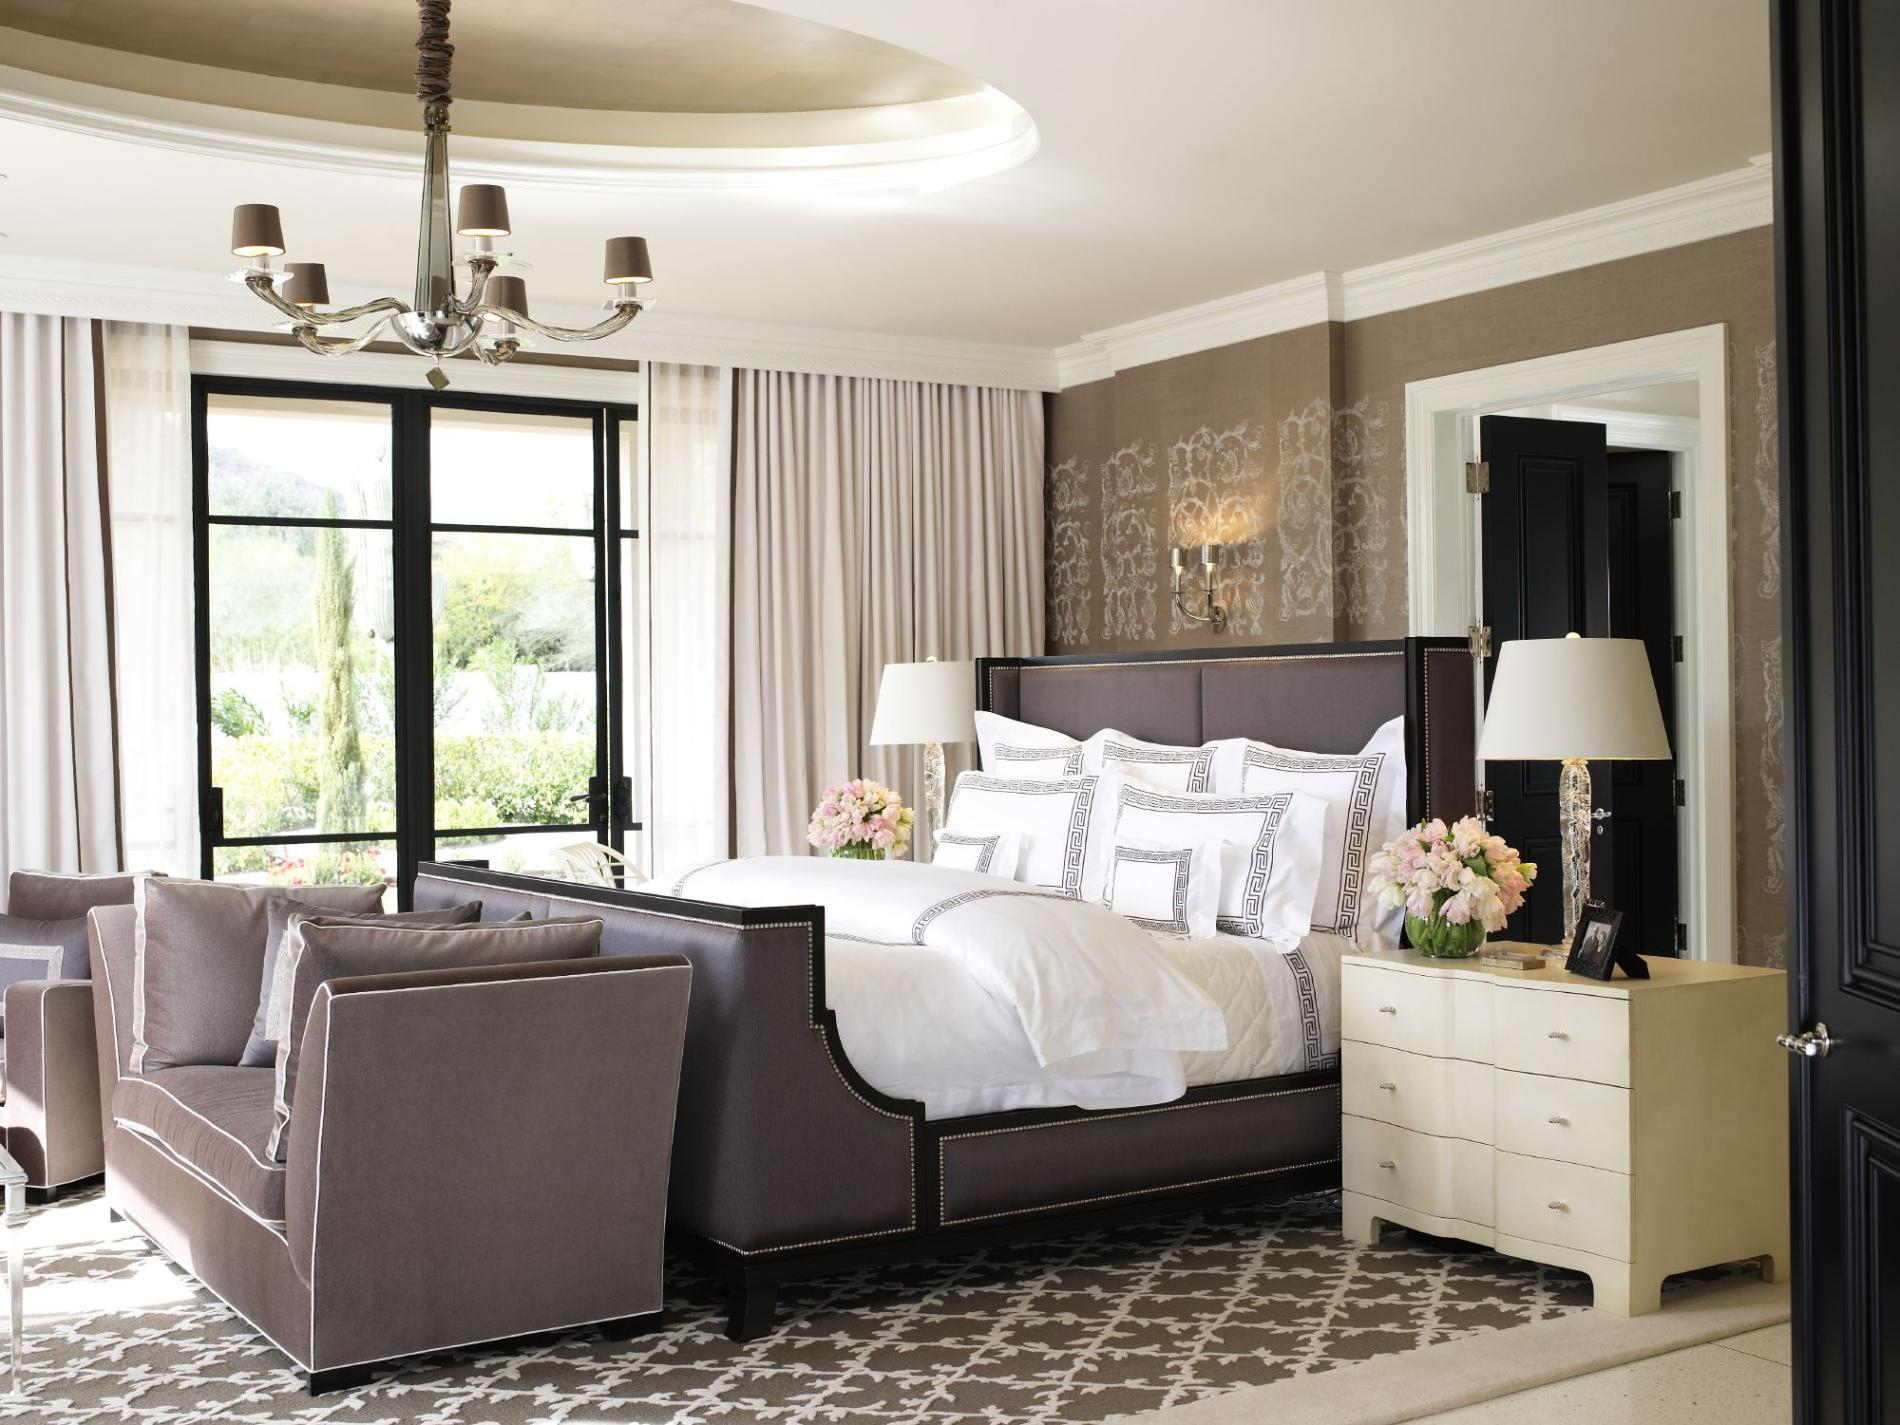 Bedroom Design Online online interior design q&a for free from our designers | decorist